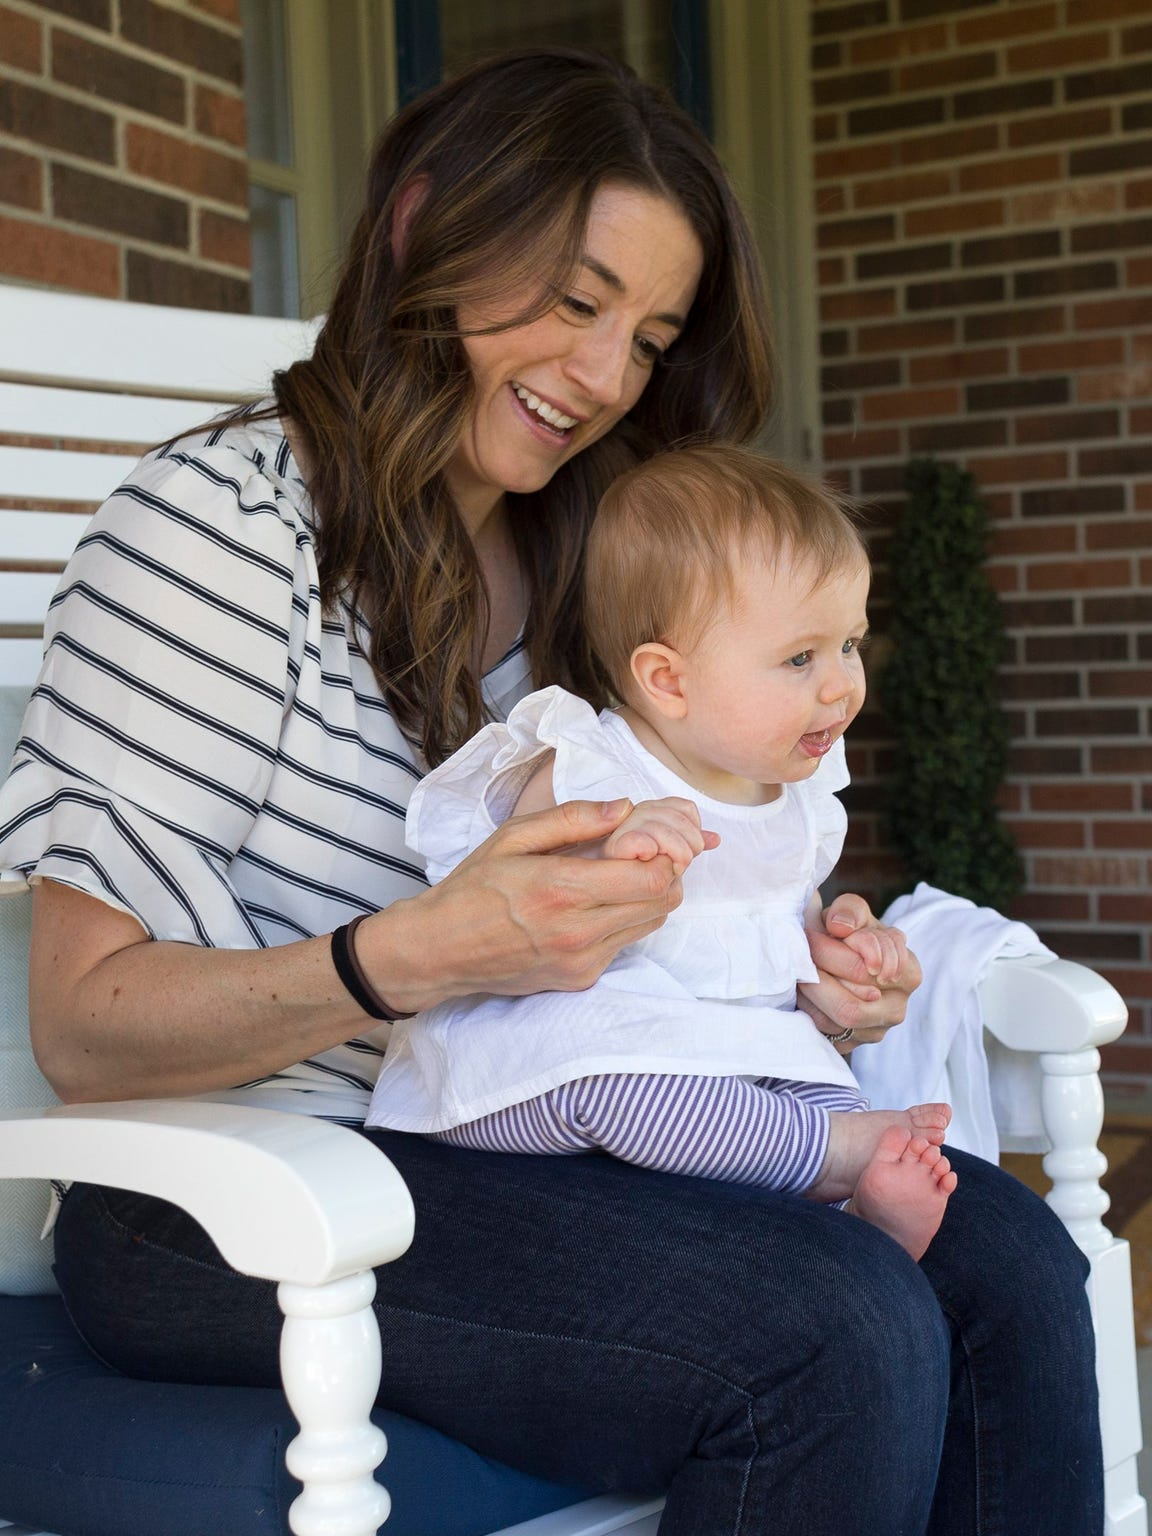 Brynn Guster holds her 7-month-old daughter, Amelia